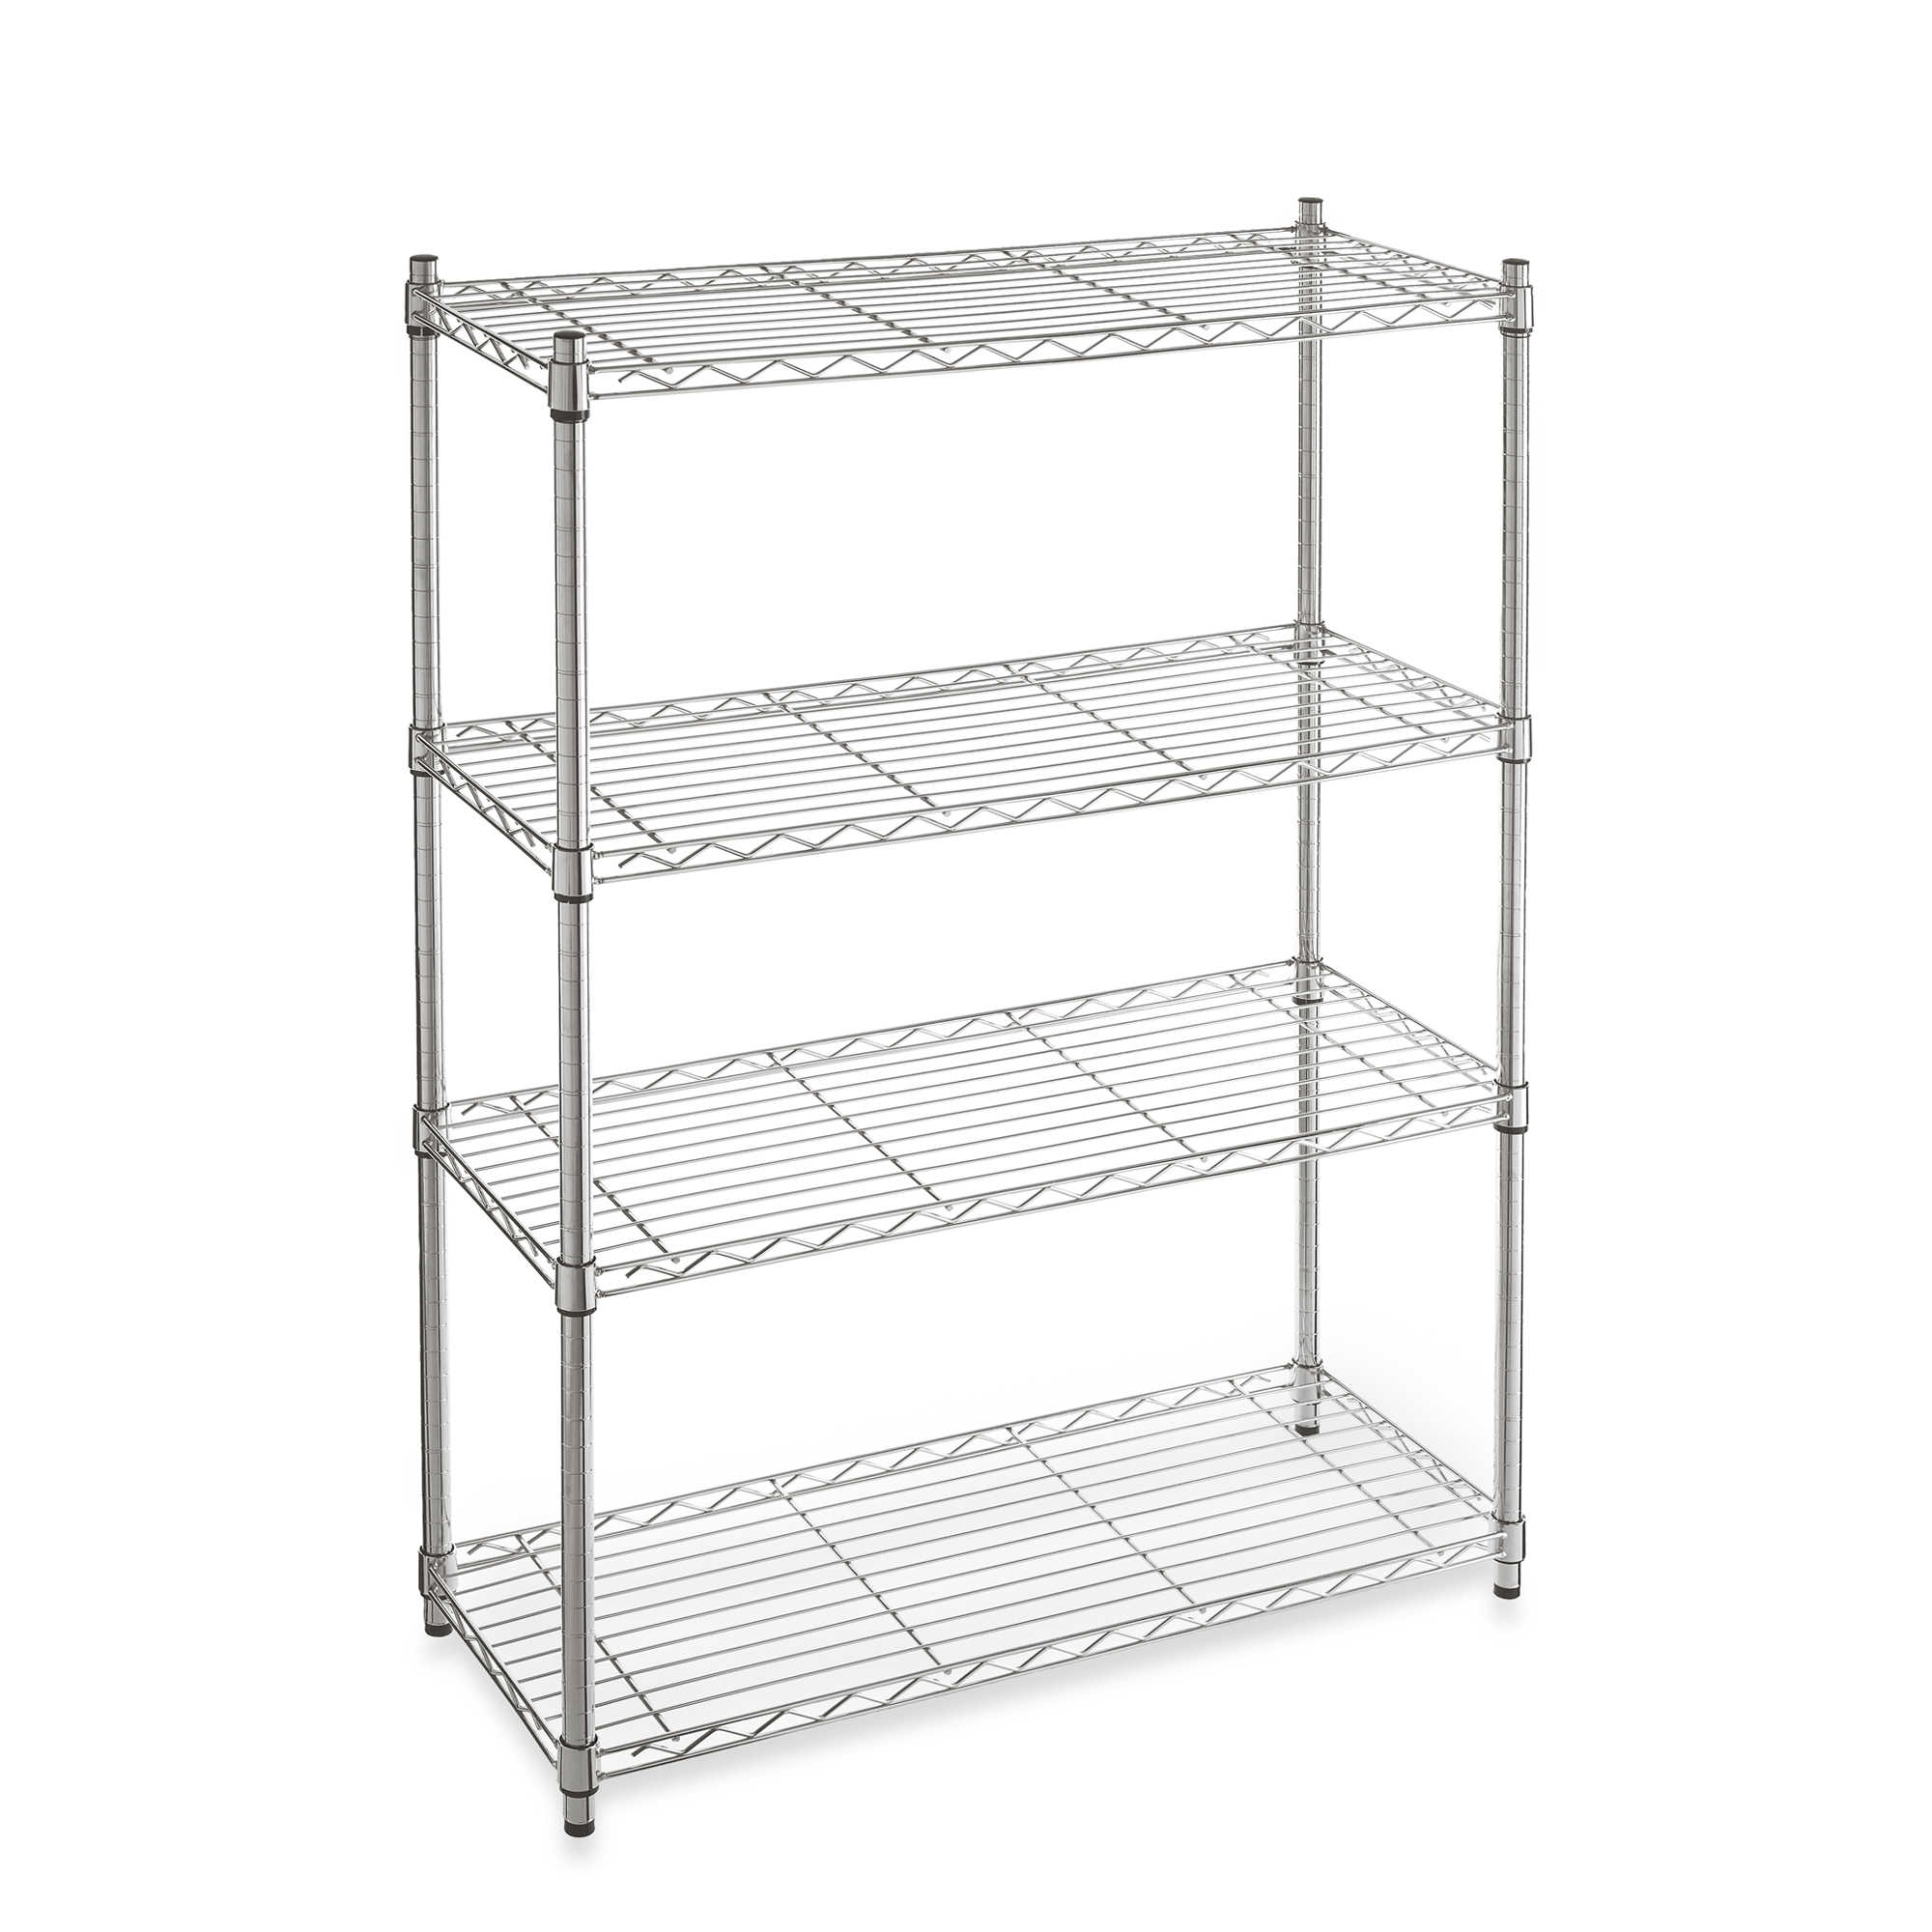 Laundry Room Organization metal Shelving unit